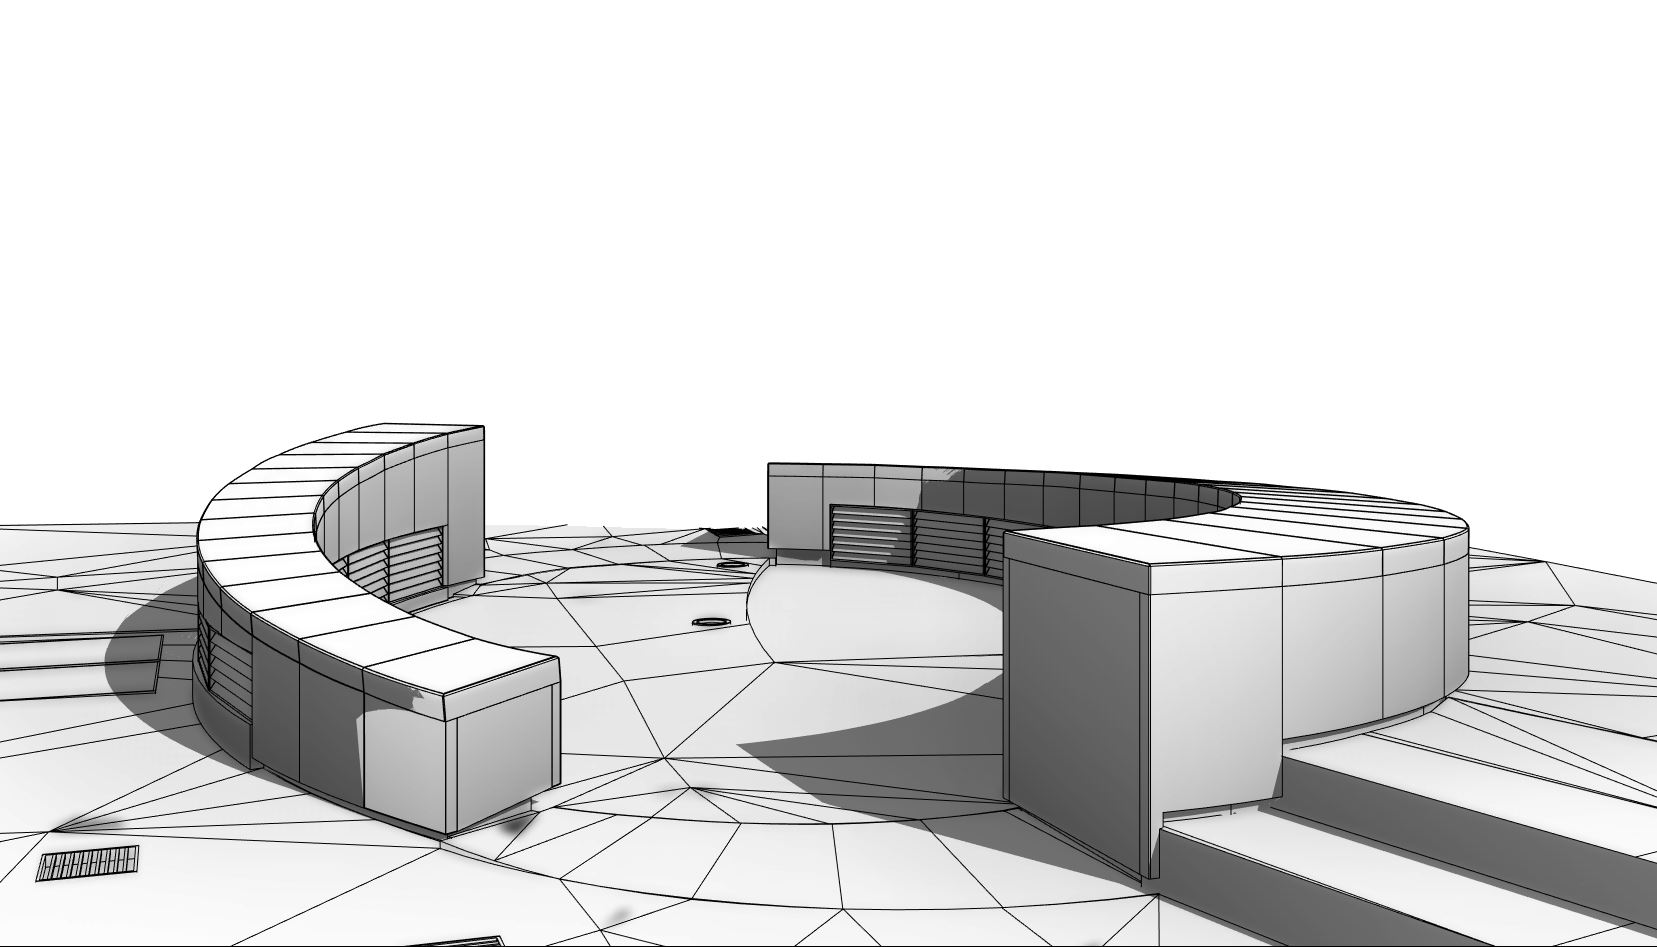 Cadplan create a 3D Revit Model of